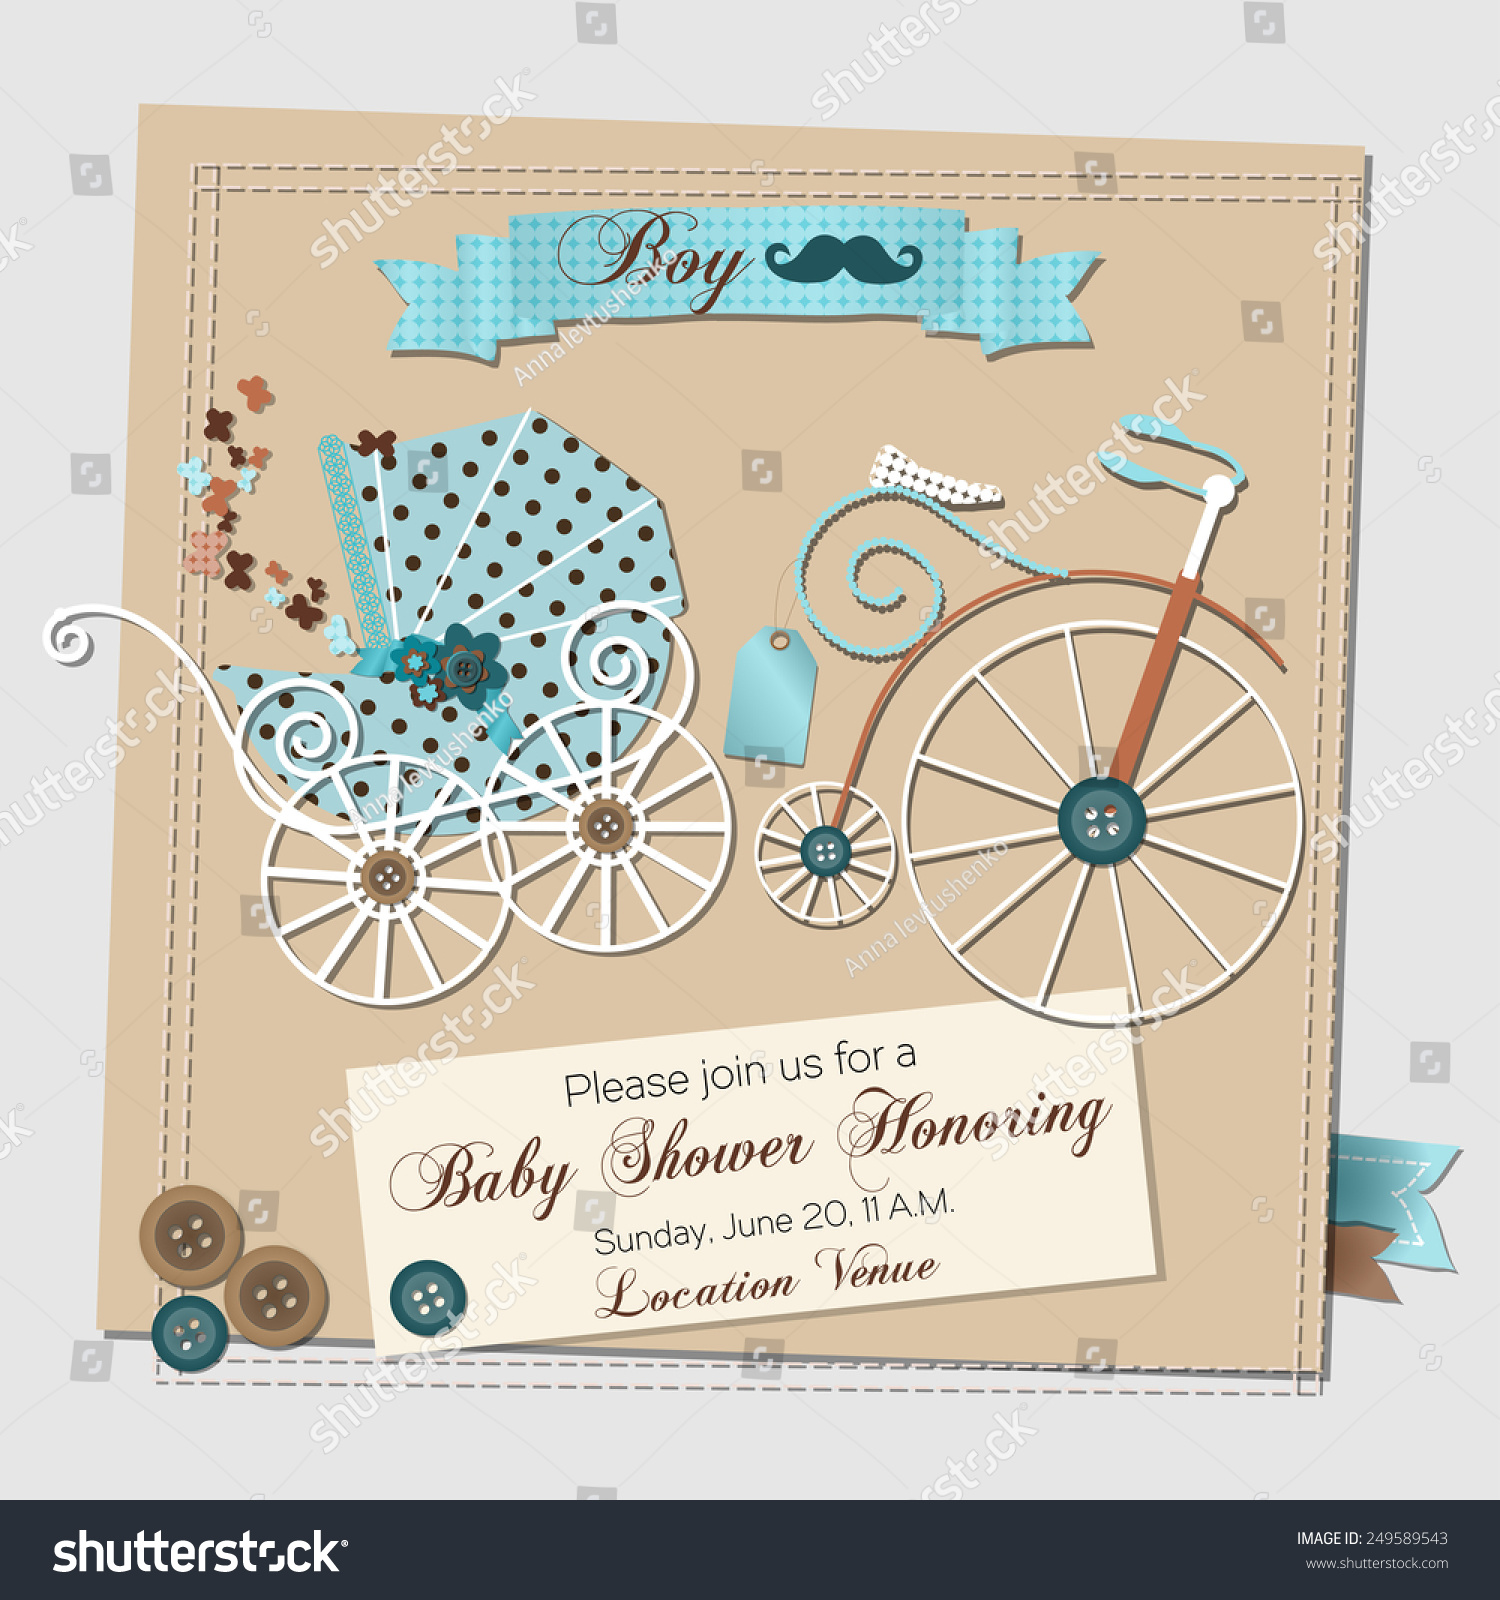 Baby Shower Invitation Template Vector Illustration Stock Vector ...